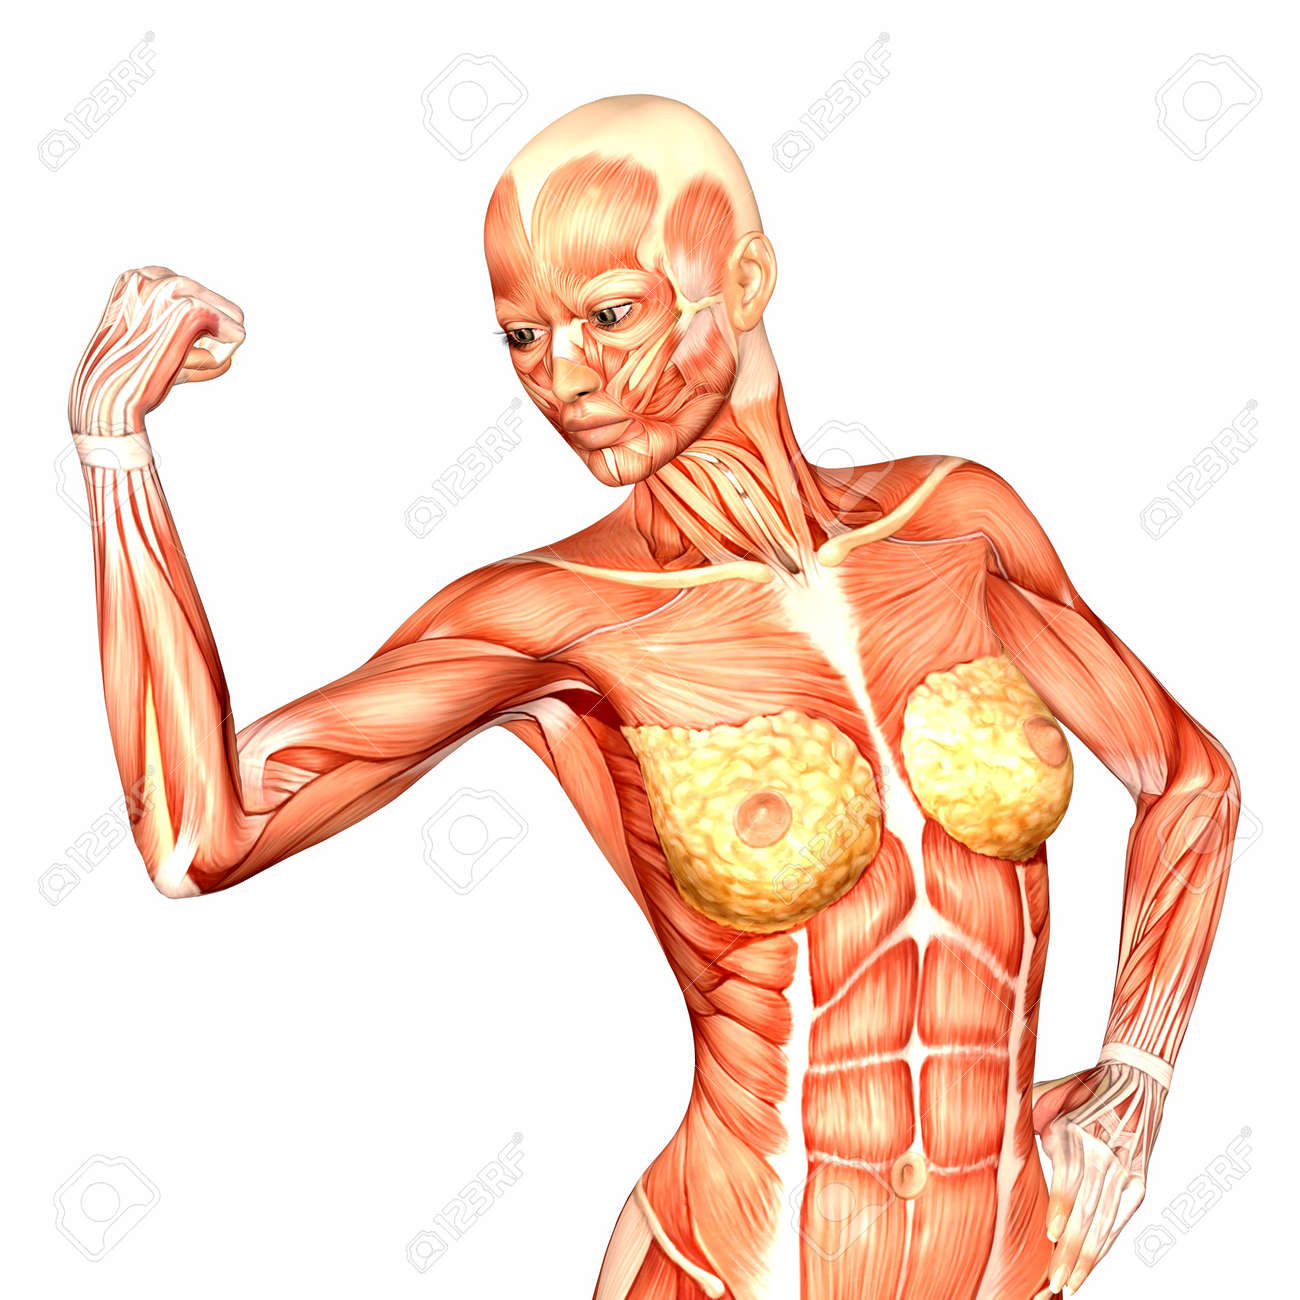 illustration of the anatomy of the female human upper body, Muscles